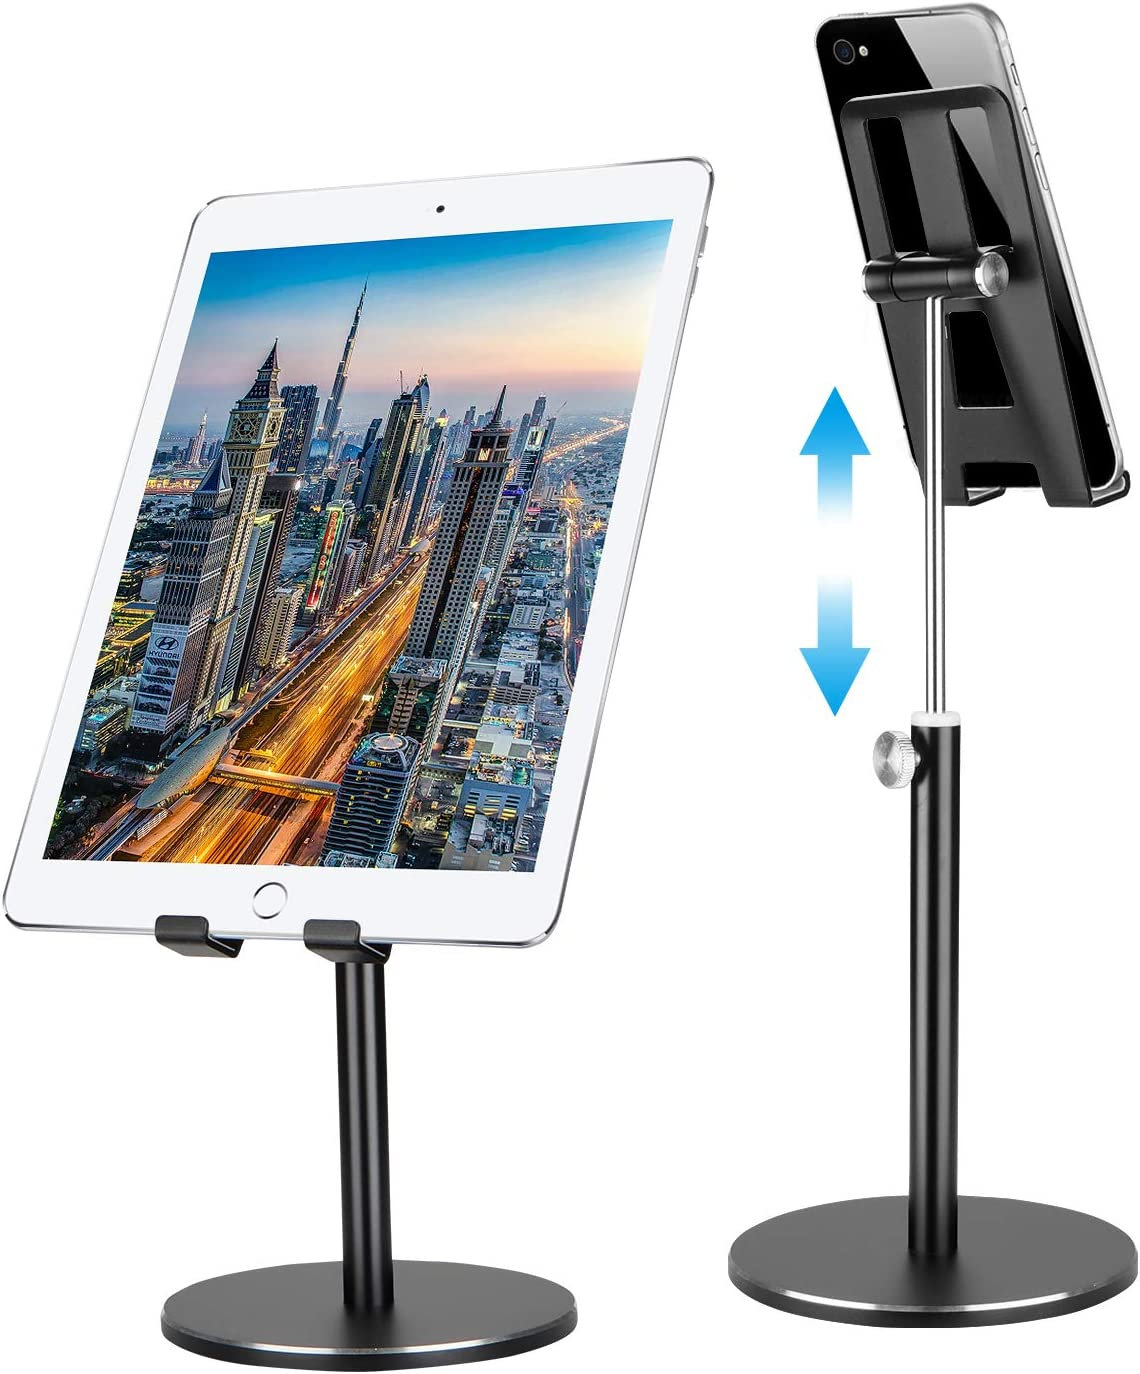 """Cell Phone Stand for Desk,Shenboxun Aluminum Cell Phone Holder,Height Angle Adjustable Cell Phone Stand,Metal Base Phone Stand Compatible with All Smartphone,iPhone and Tablet (4-12"""") - Black"""